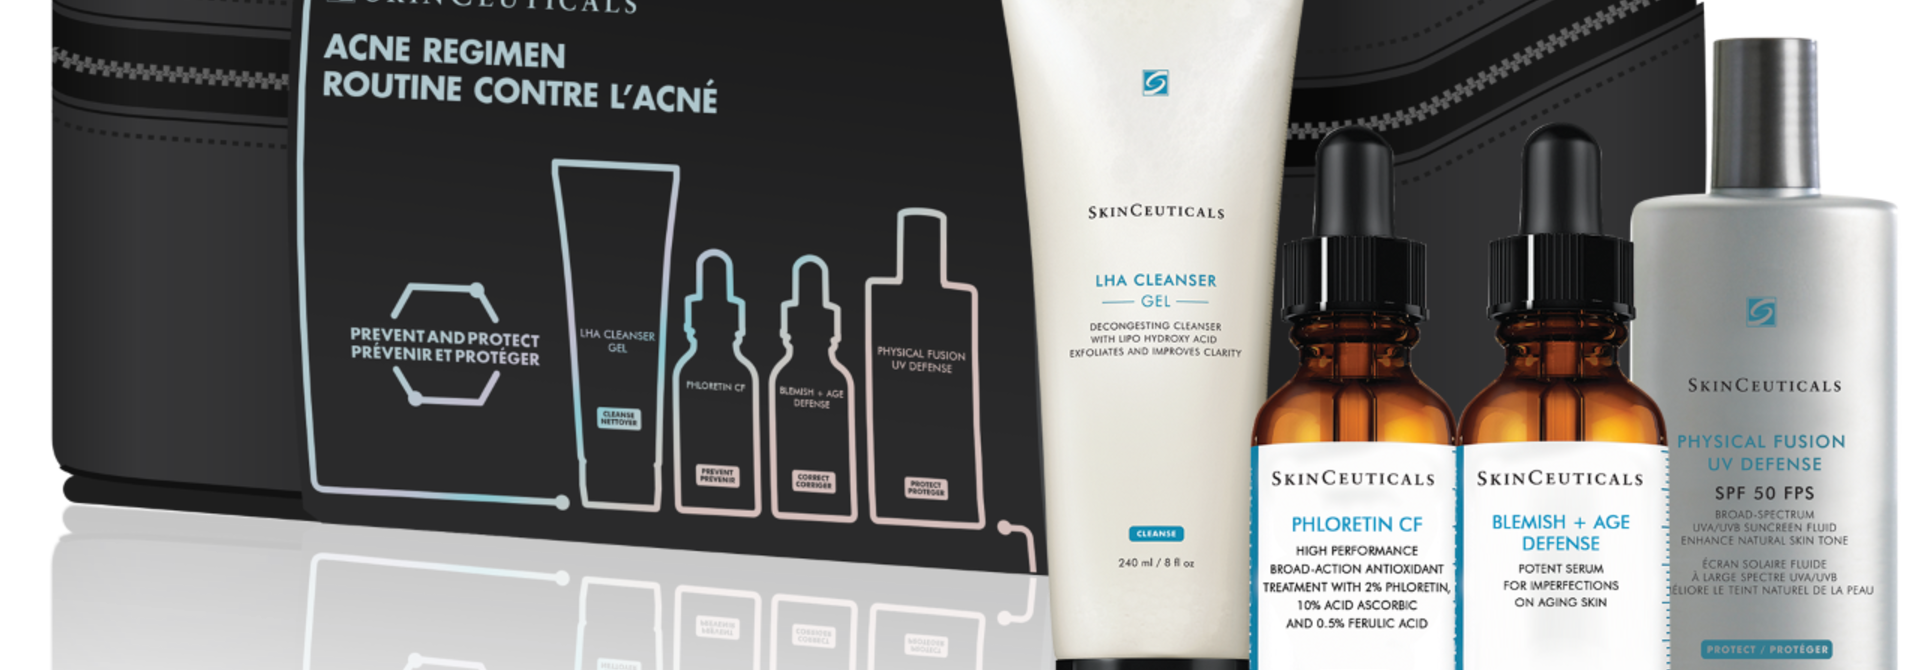 Acne-Prone Kit ($395 value)